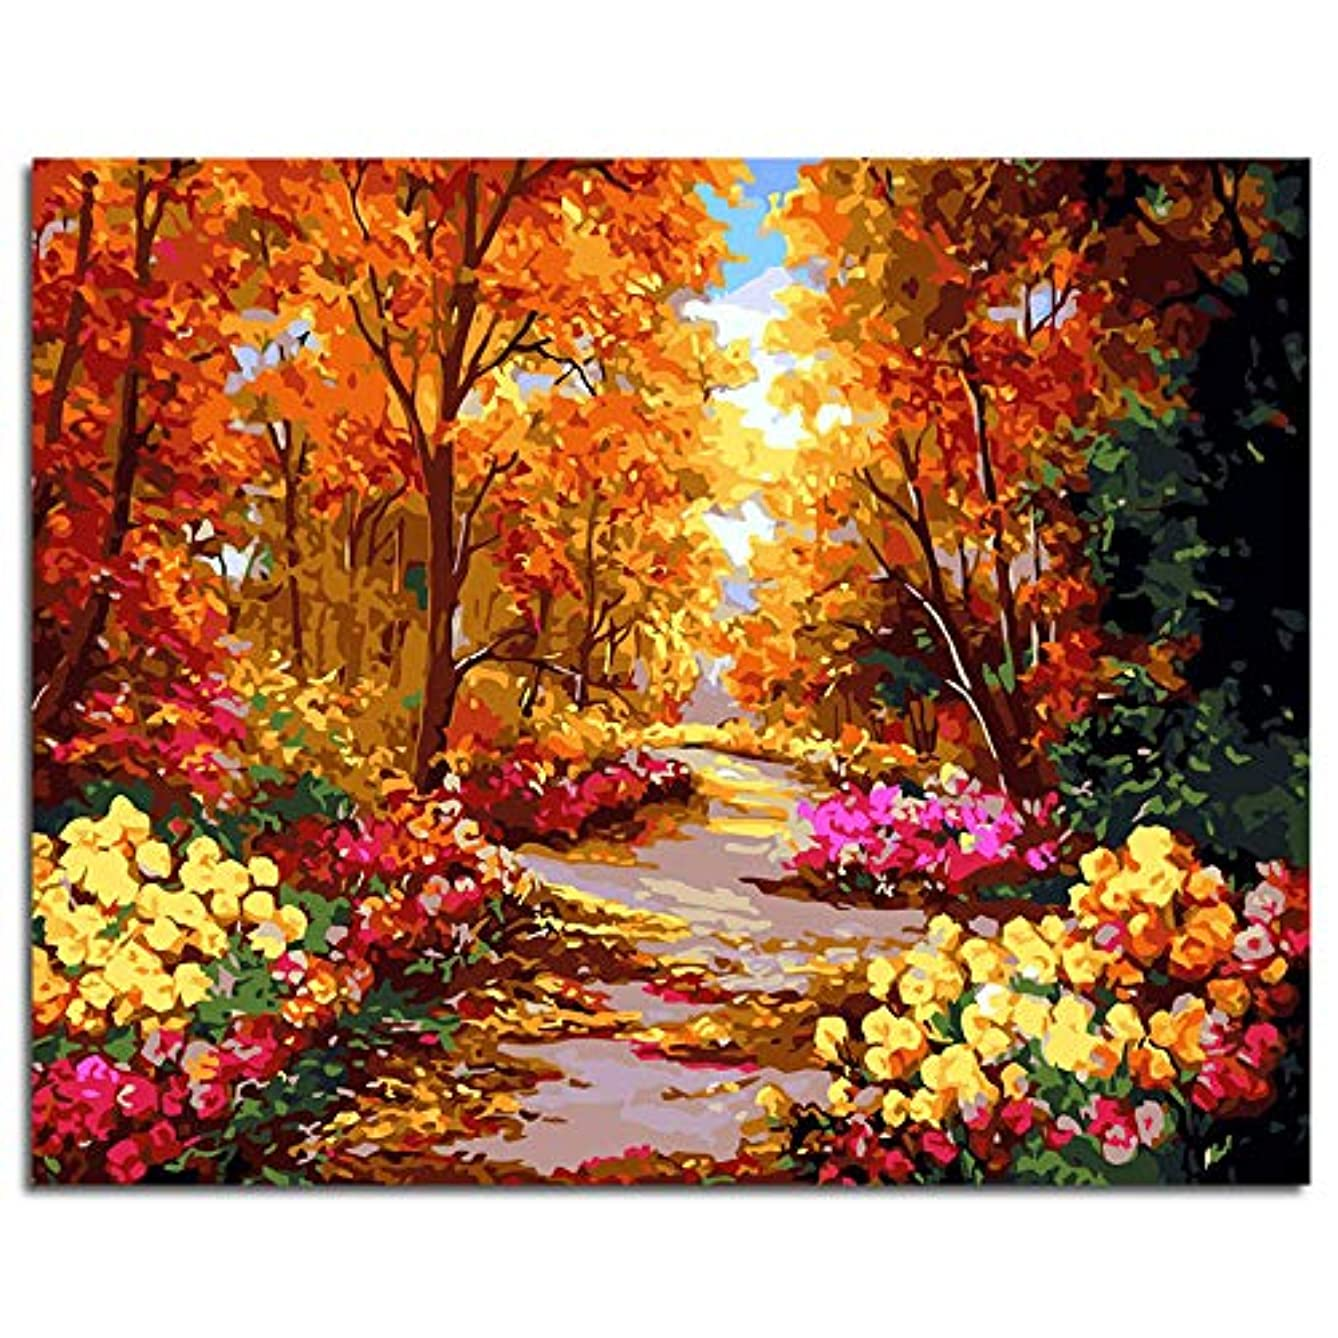 """Paint-by-Number Kits for Adults - Passion (Frameless) - Includes Brushes, Acrylic Paints and Numbered Canvas - Frameless - 16"""" x 20"""" – Great for Kids and Adults (Landscape)"""